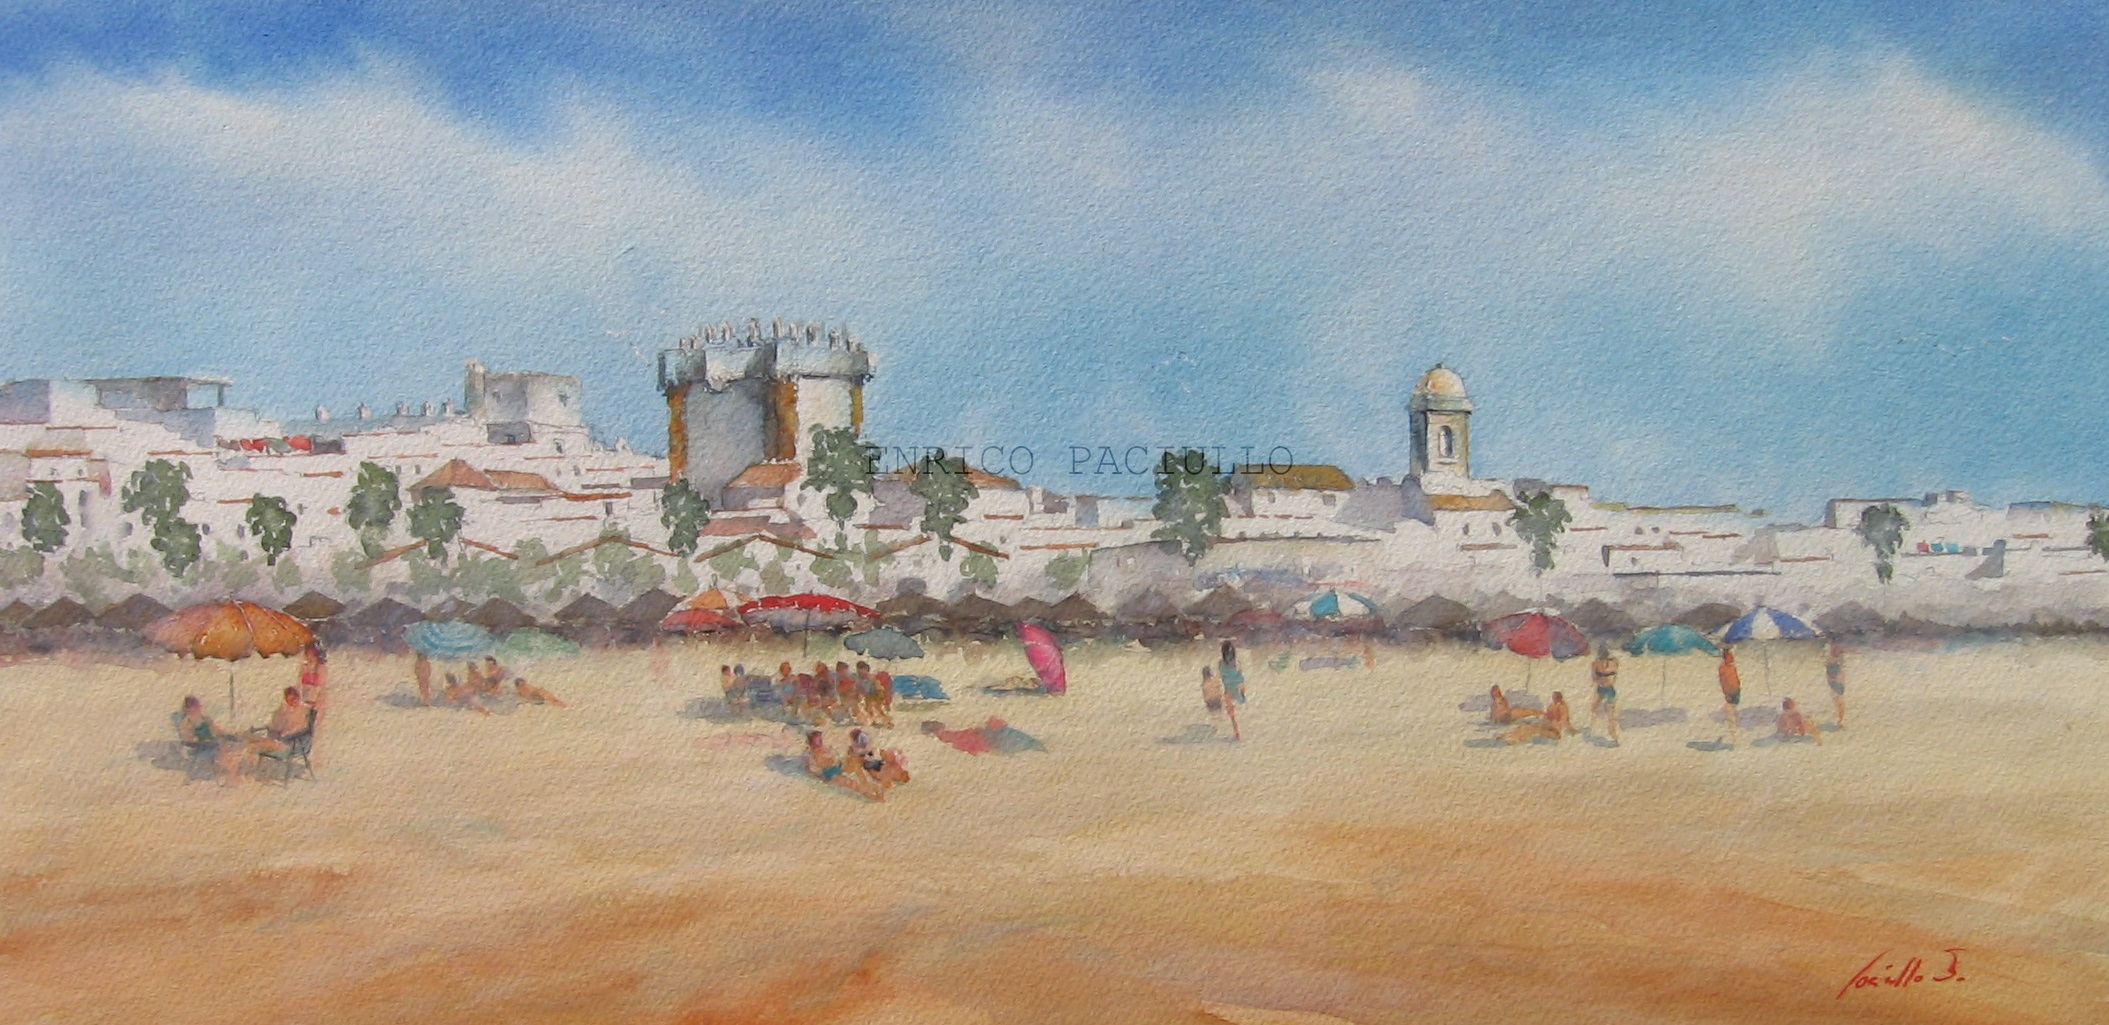 Nº204 PLAYA DE CONIL